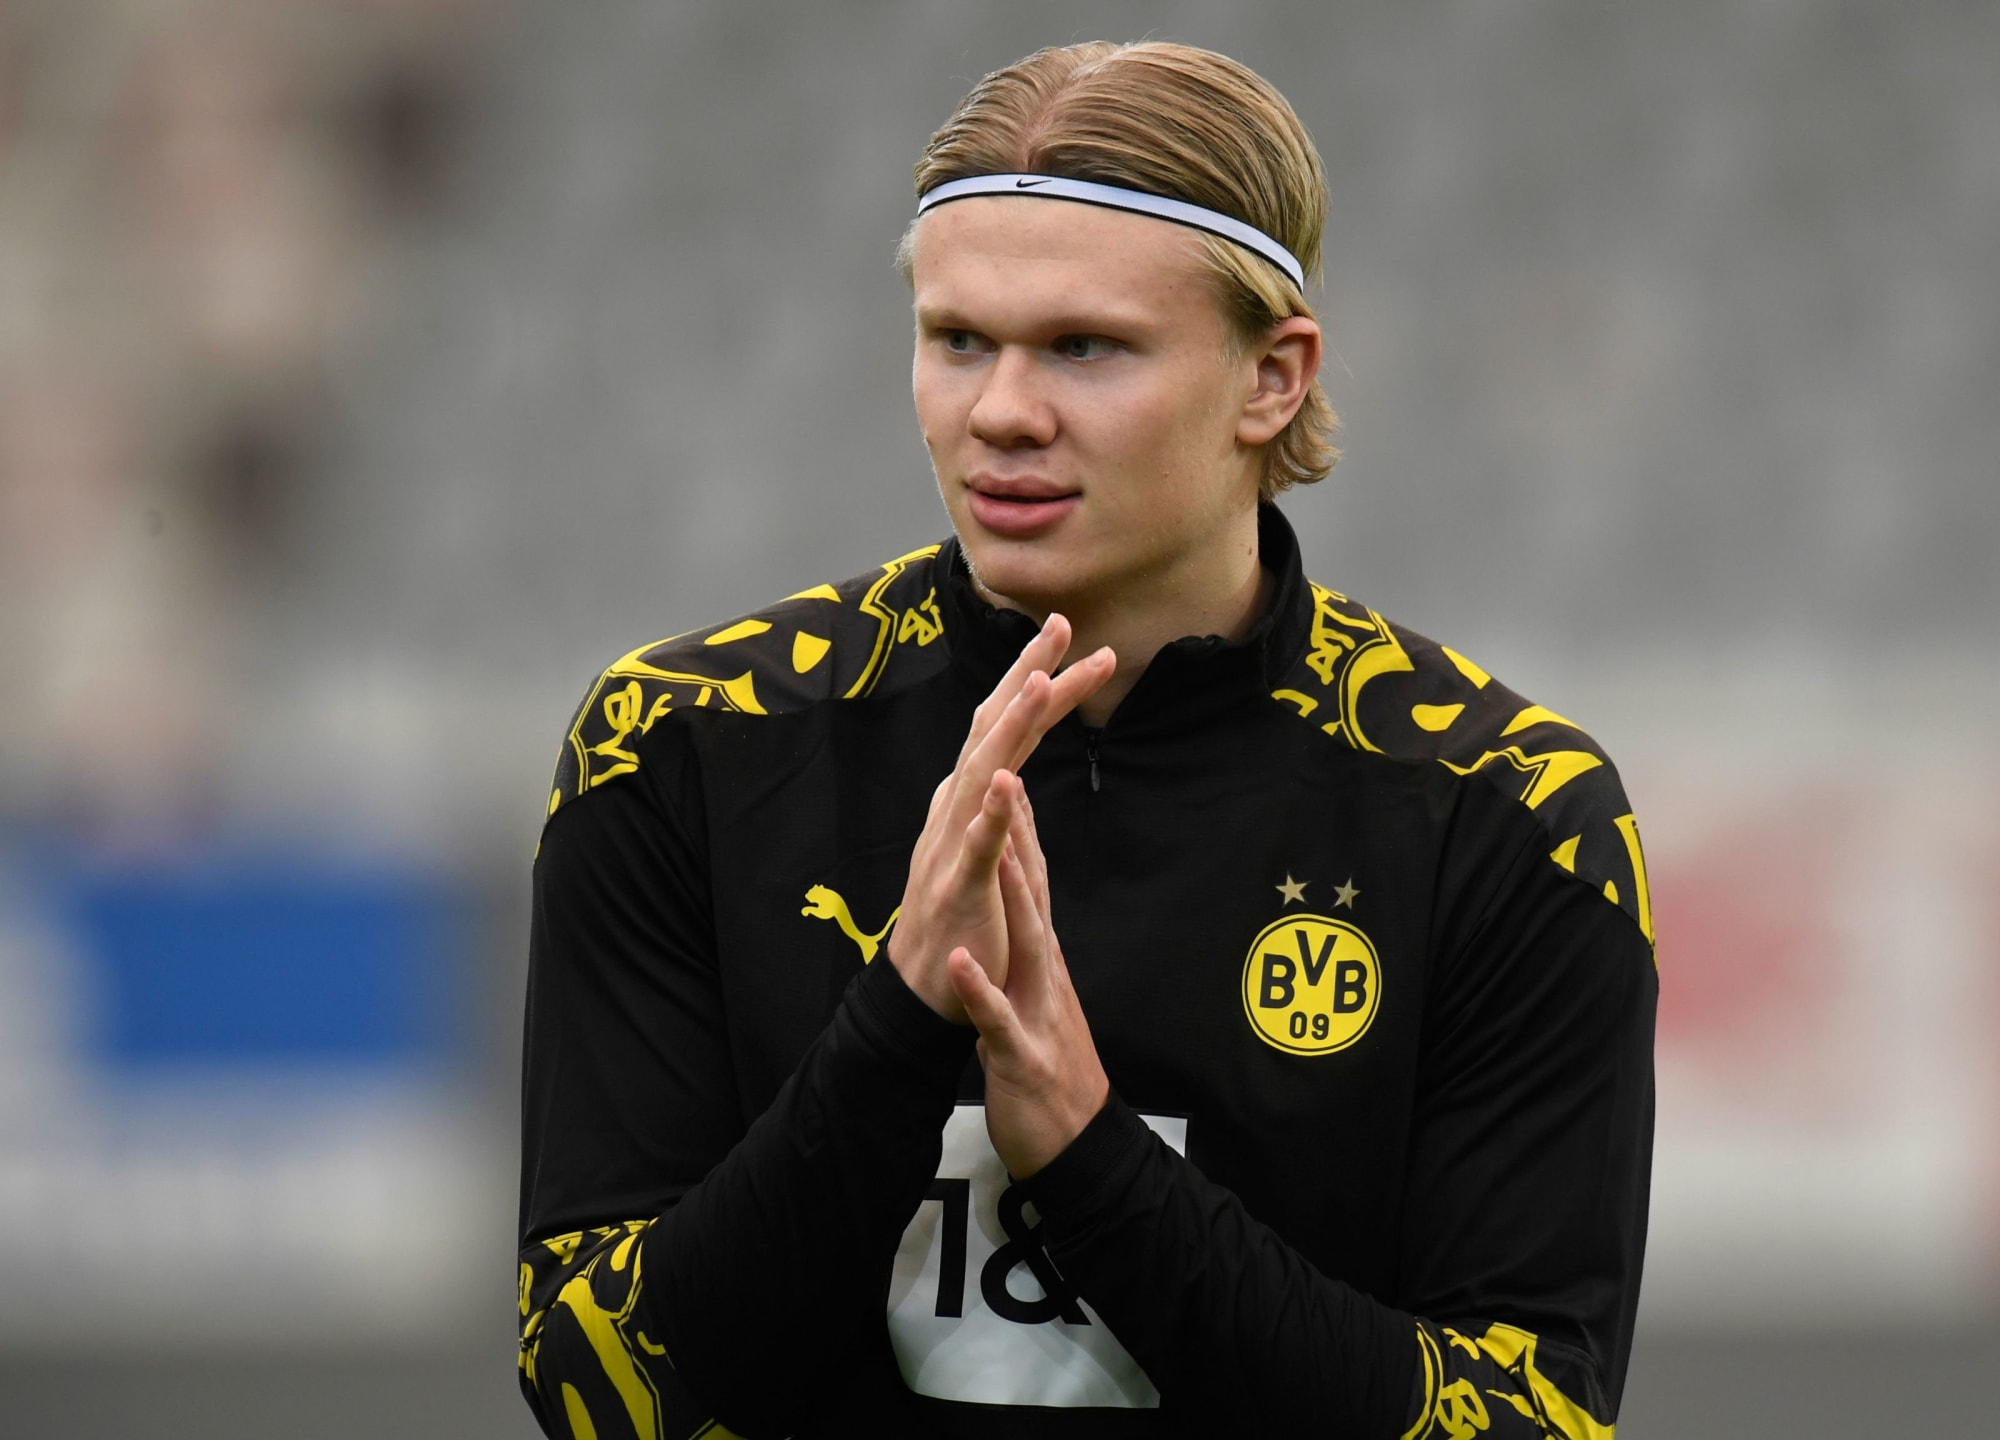 Erling Haaland's Borussia Dortmund release clause in 2022 likely to be 'more than €80 million'